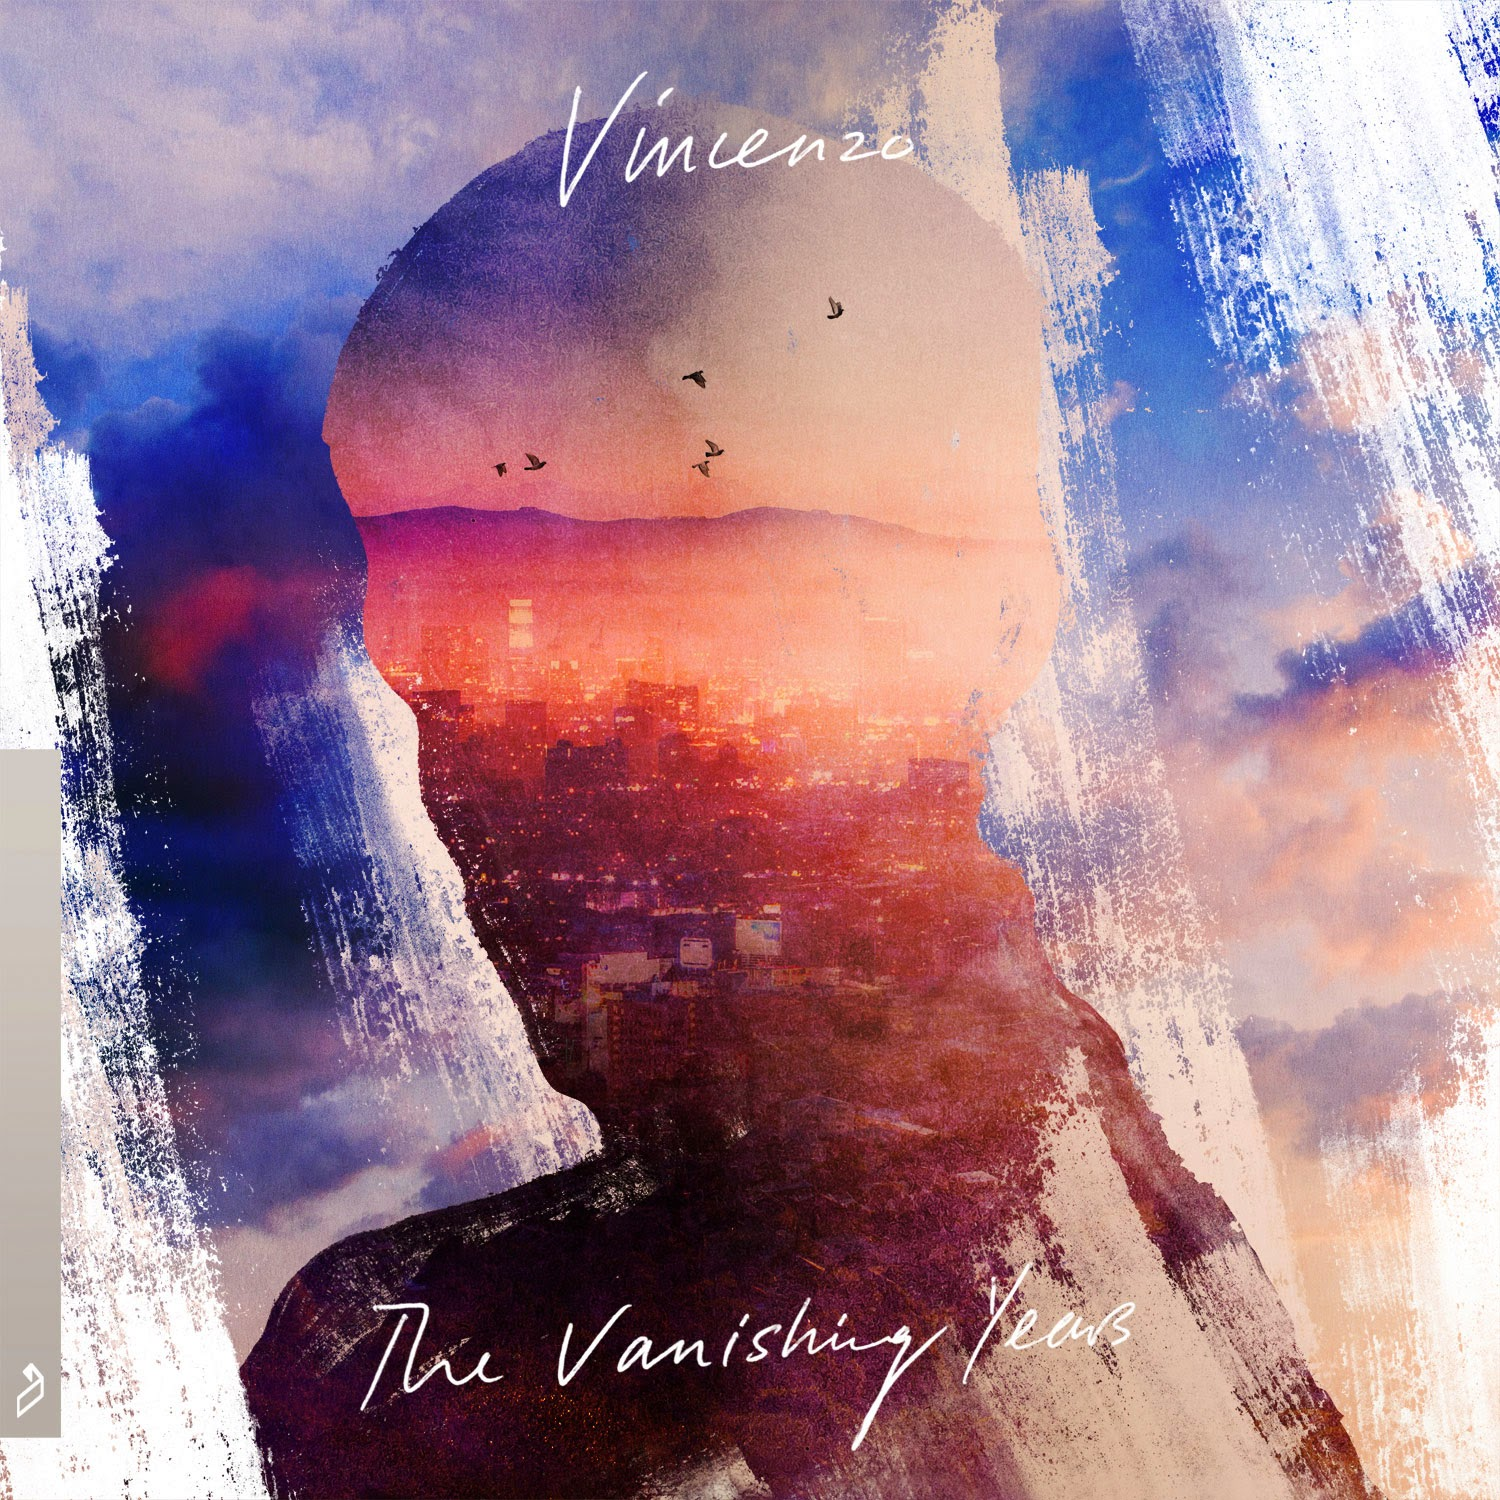 """Vincenzo """"The Vanishing Years"""" - Out Now"""